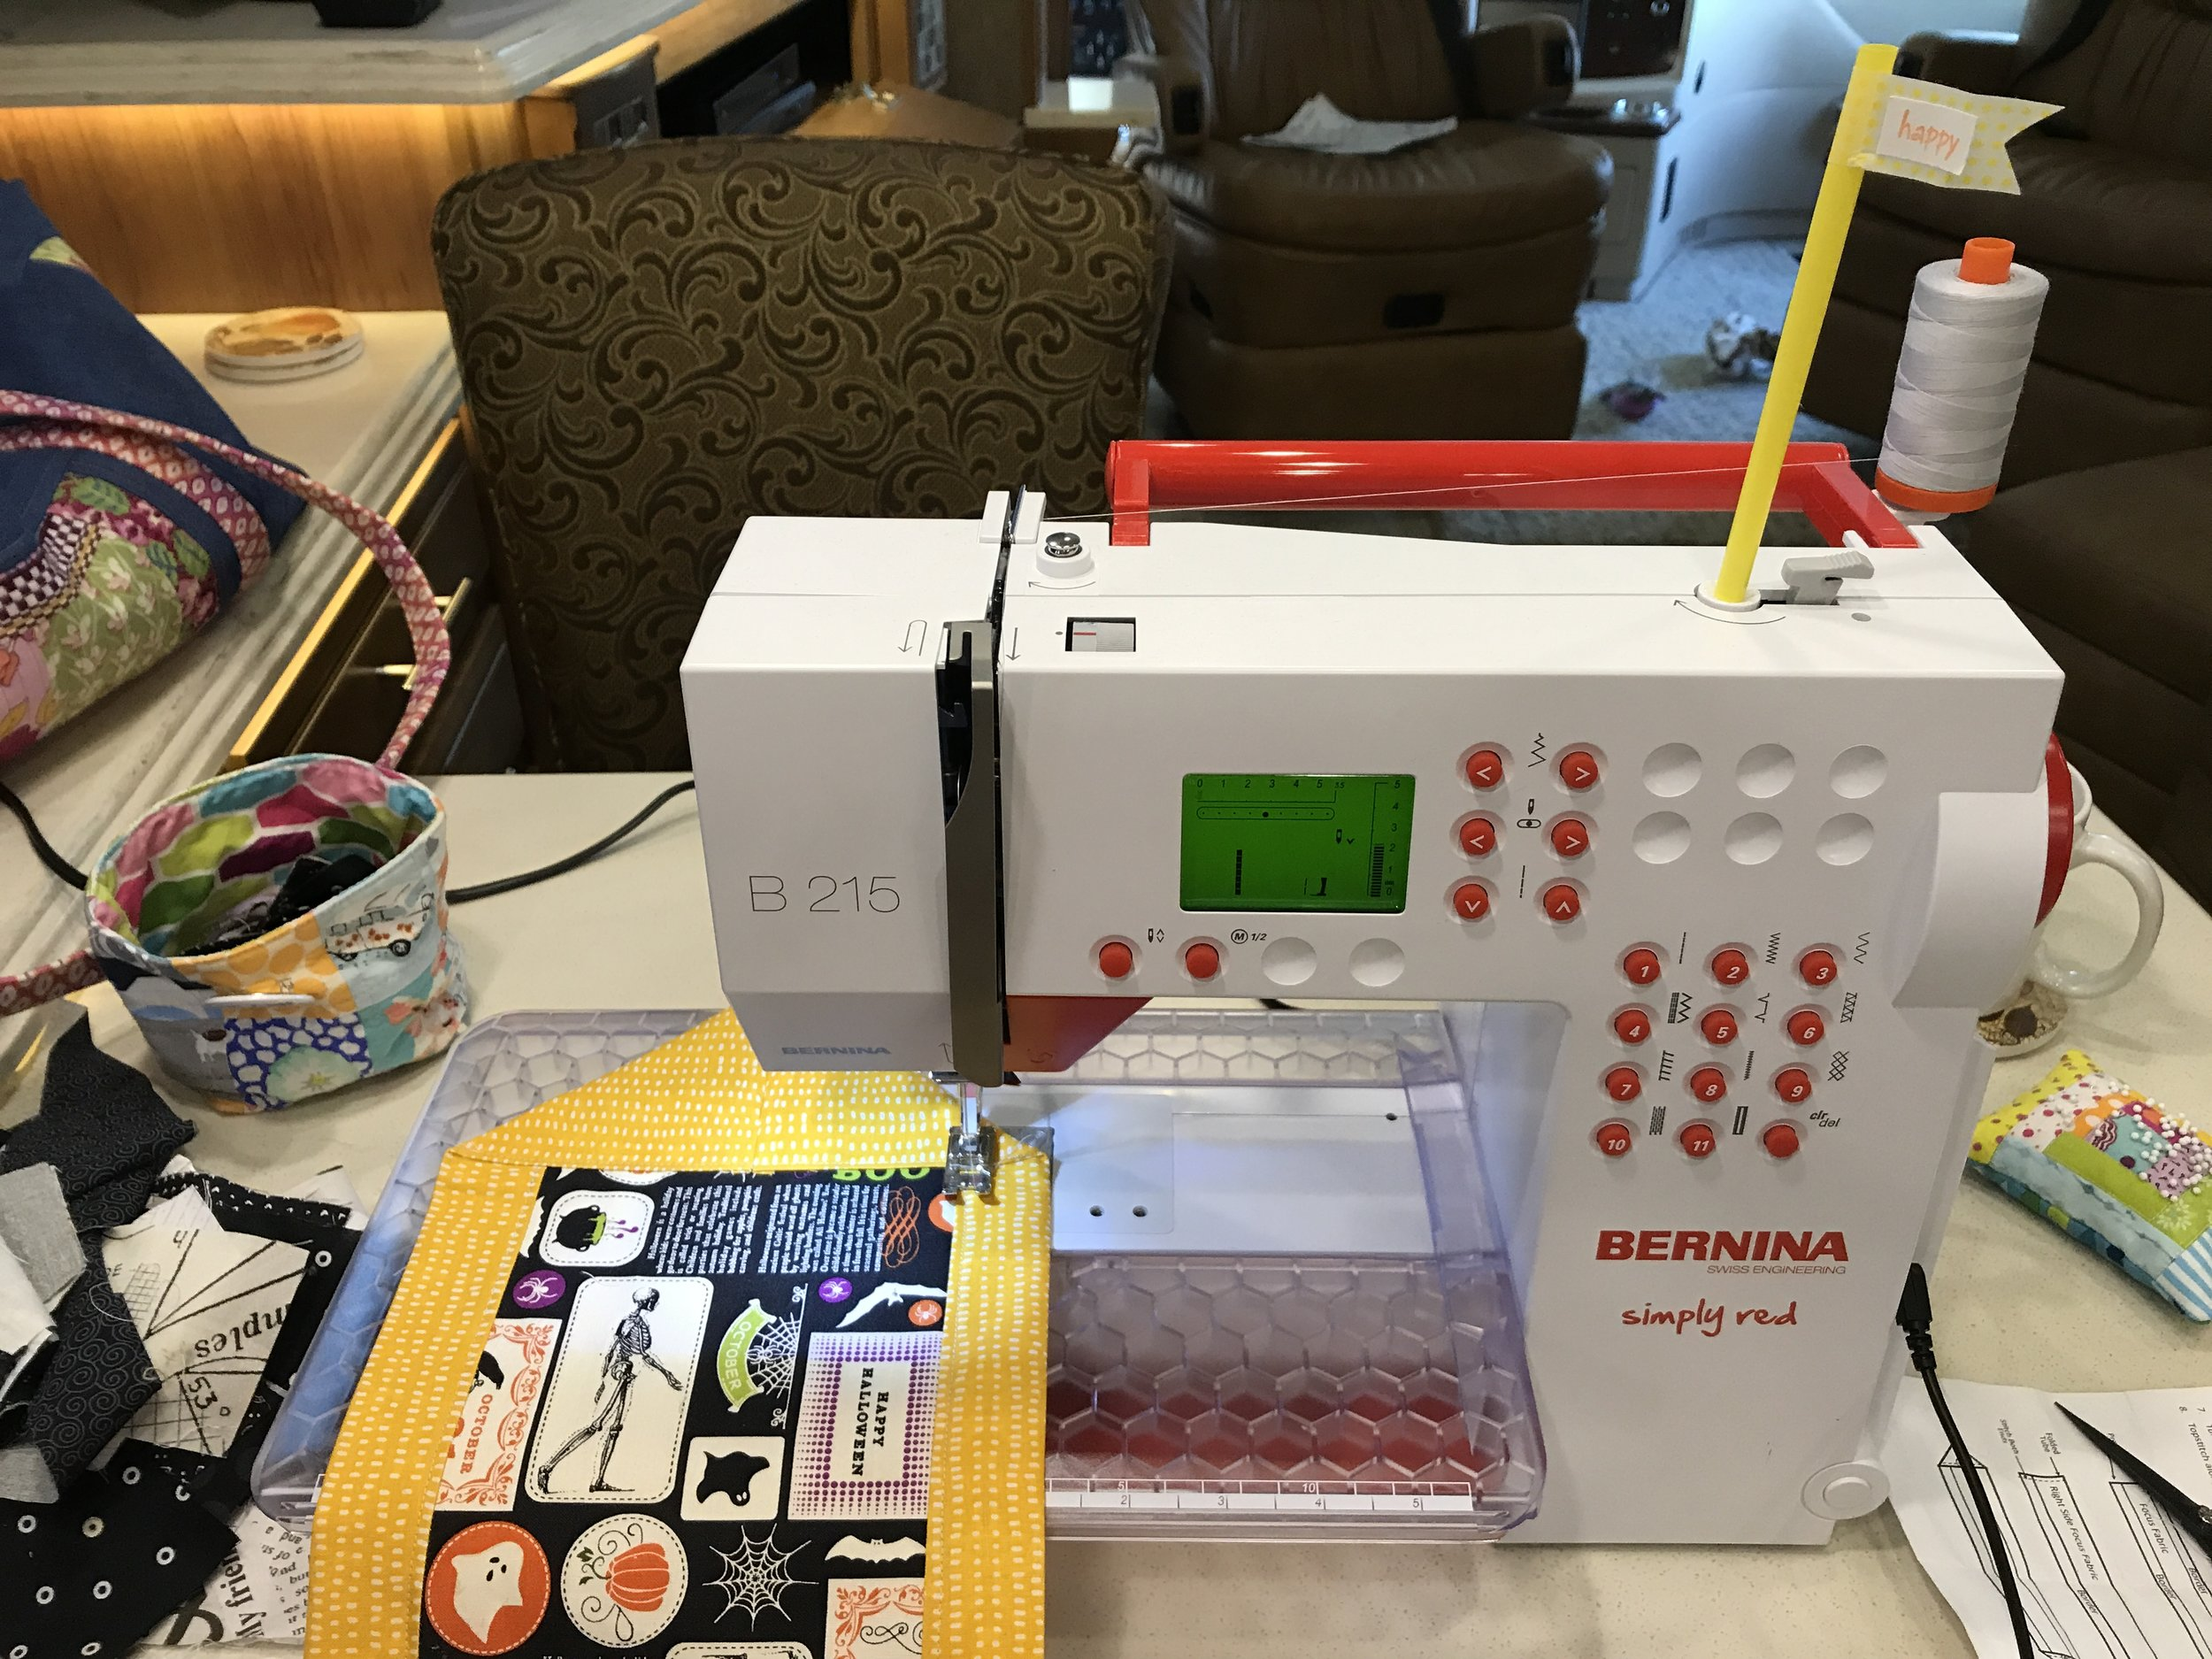 I brought the Bernina red machine to keep for sewing in the RV.